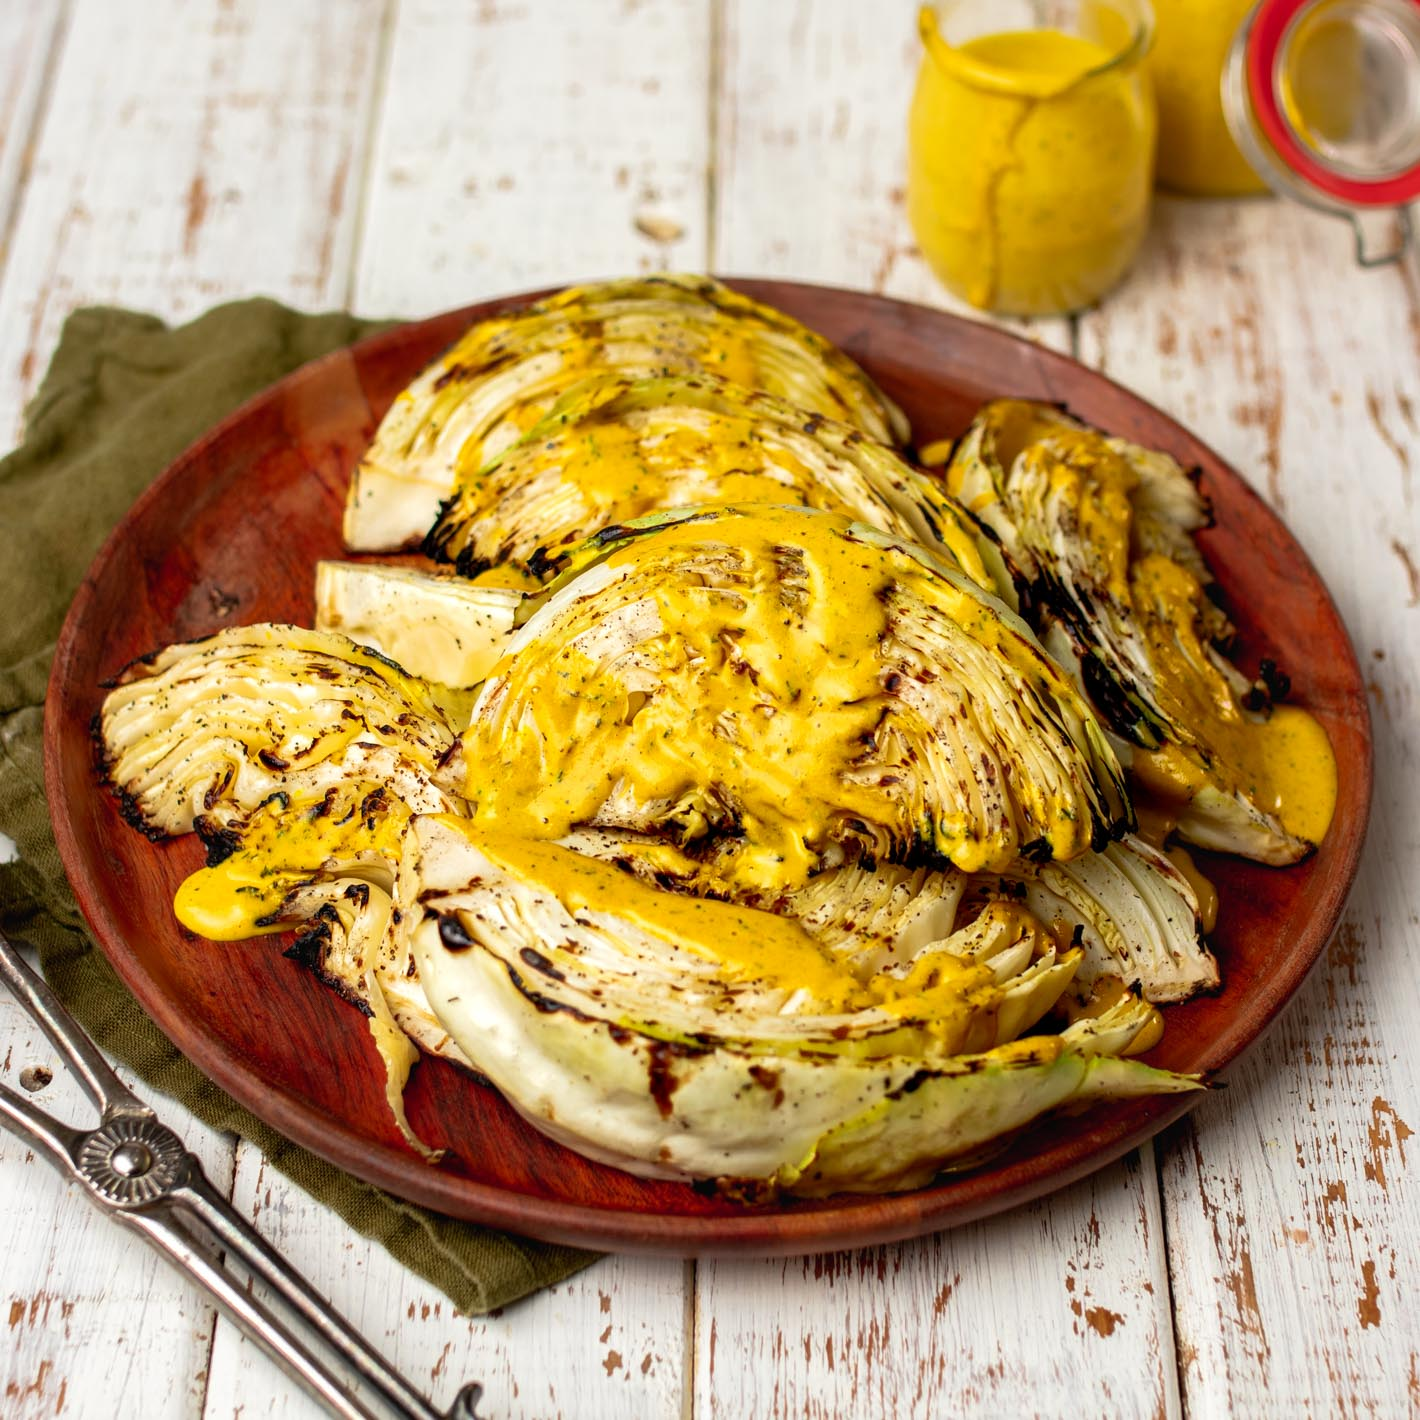 Grilled Cabbage Wedges with Turmeric Dill Dressing